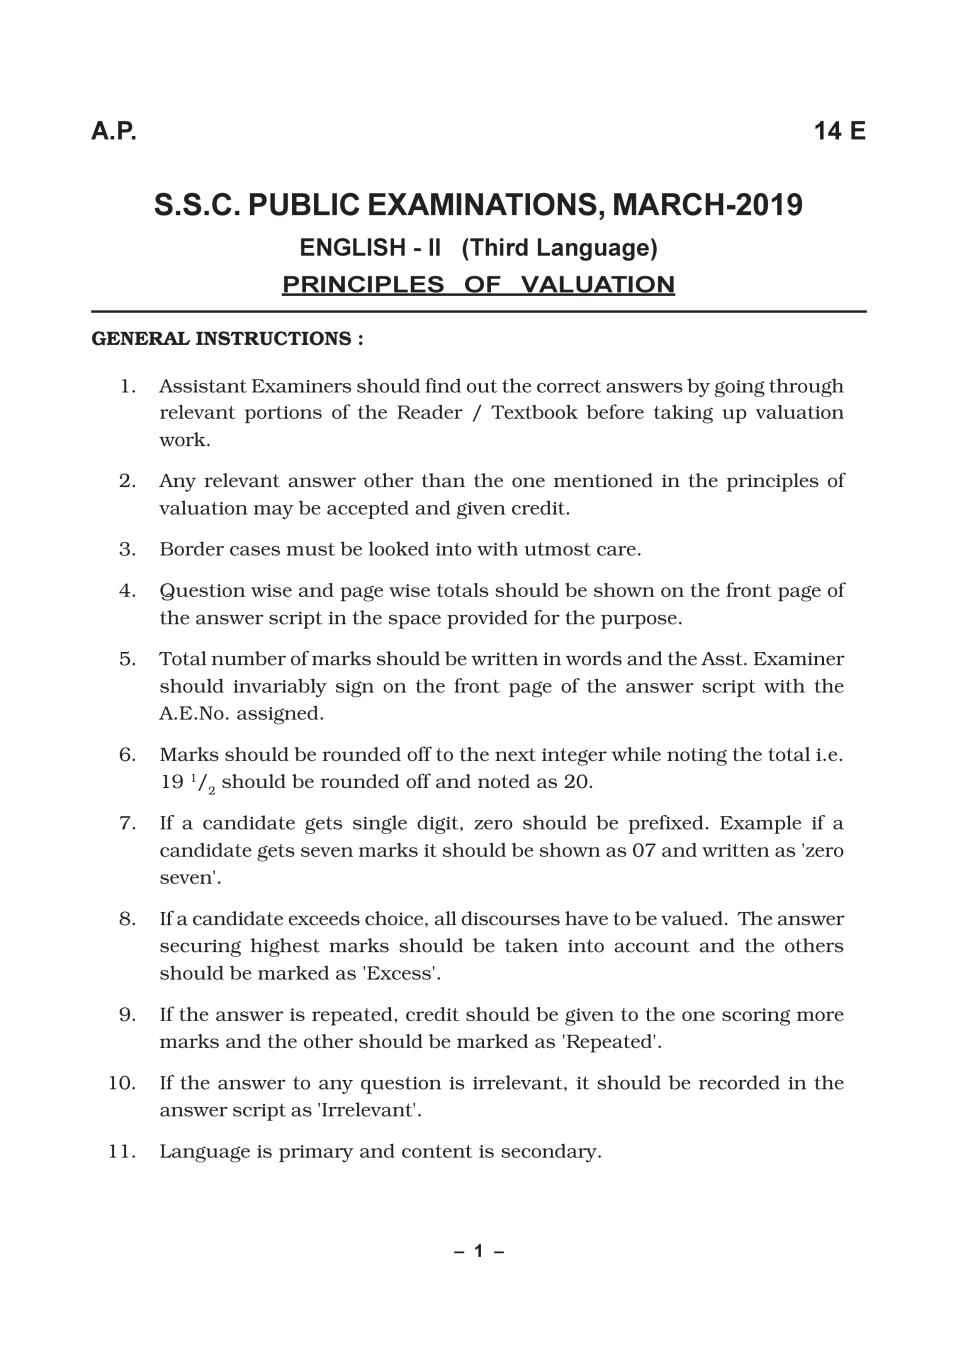 AP 10th Class Marking Scheme 2019 English - Paper 2 (3rd Language) - Page 1